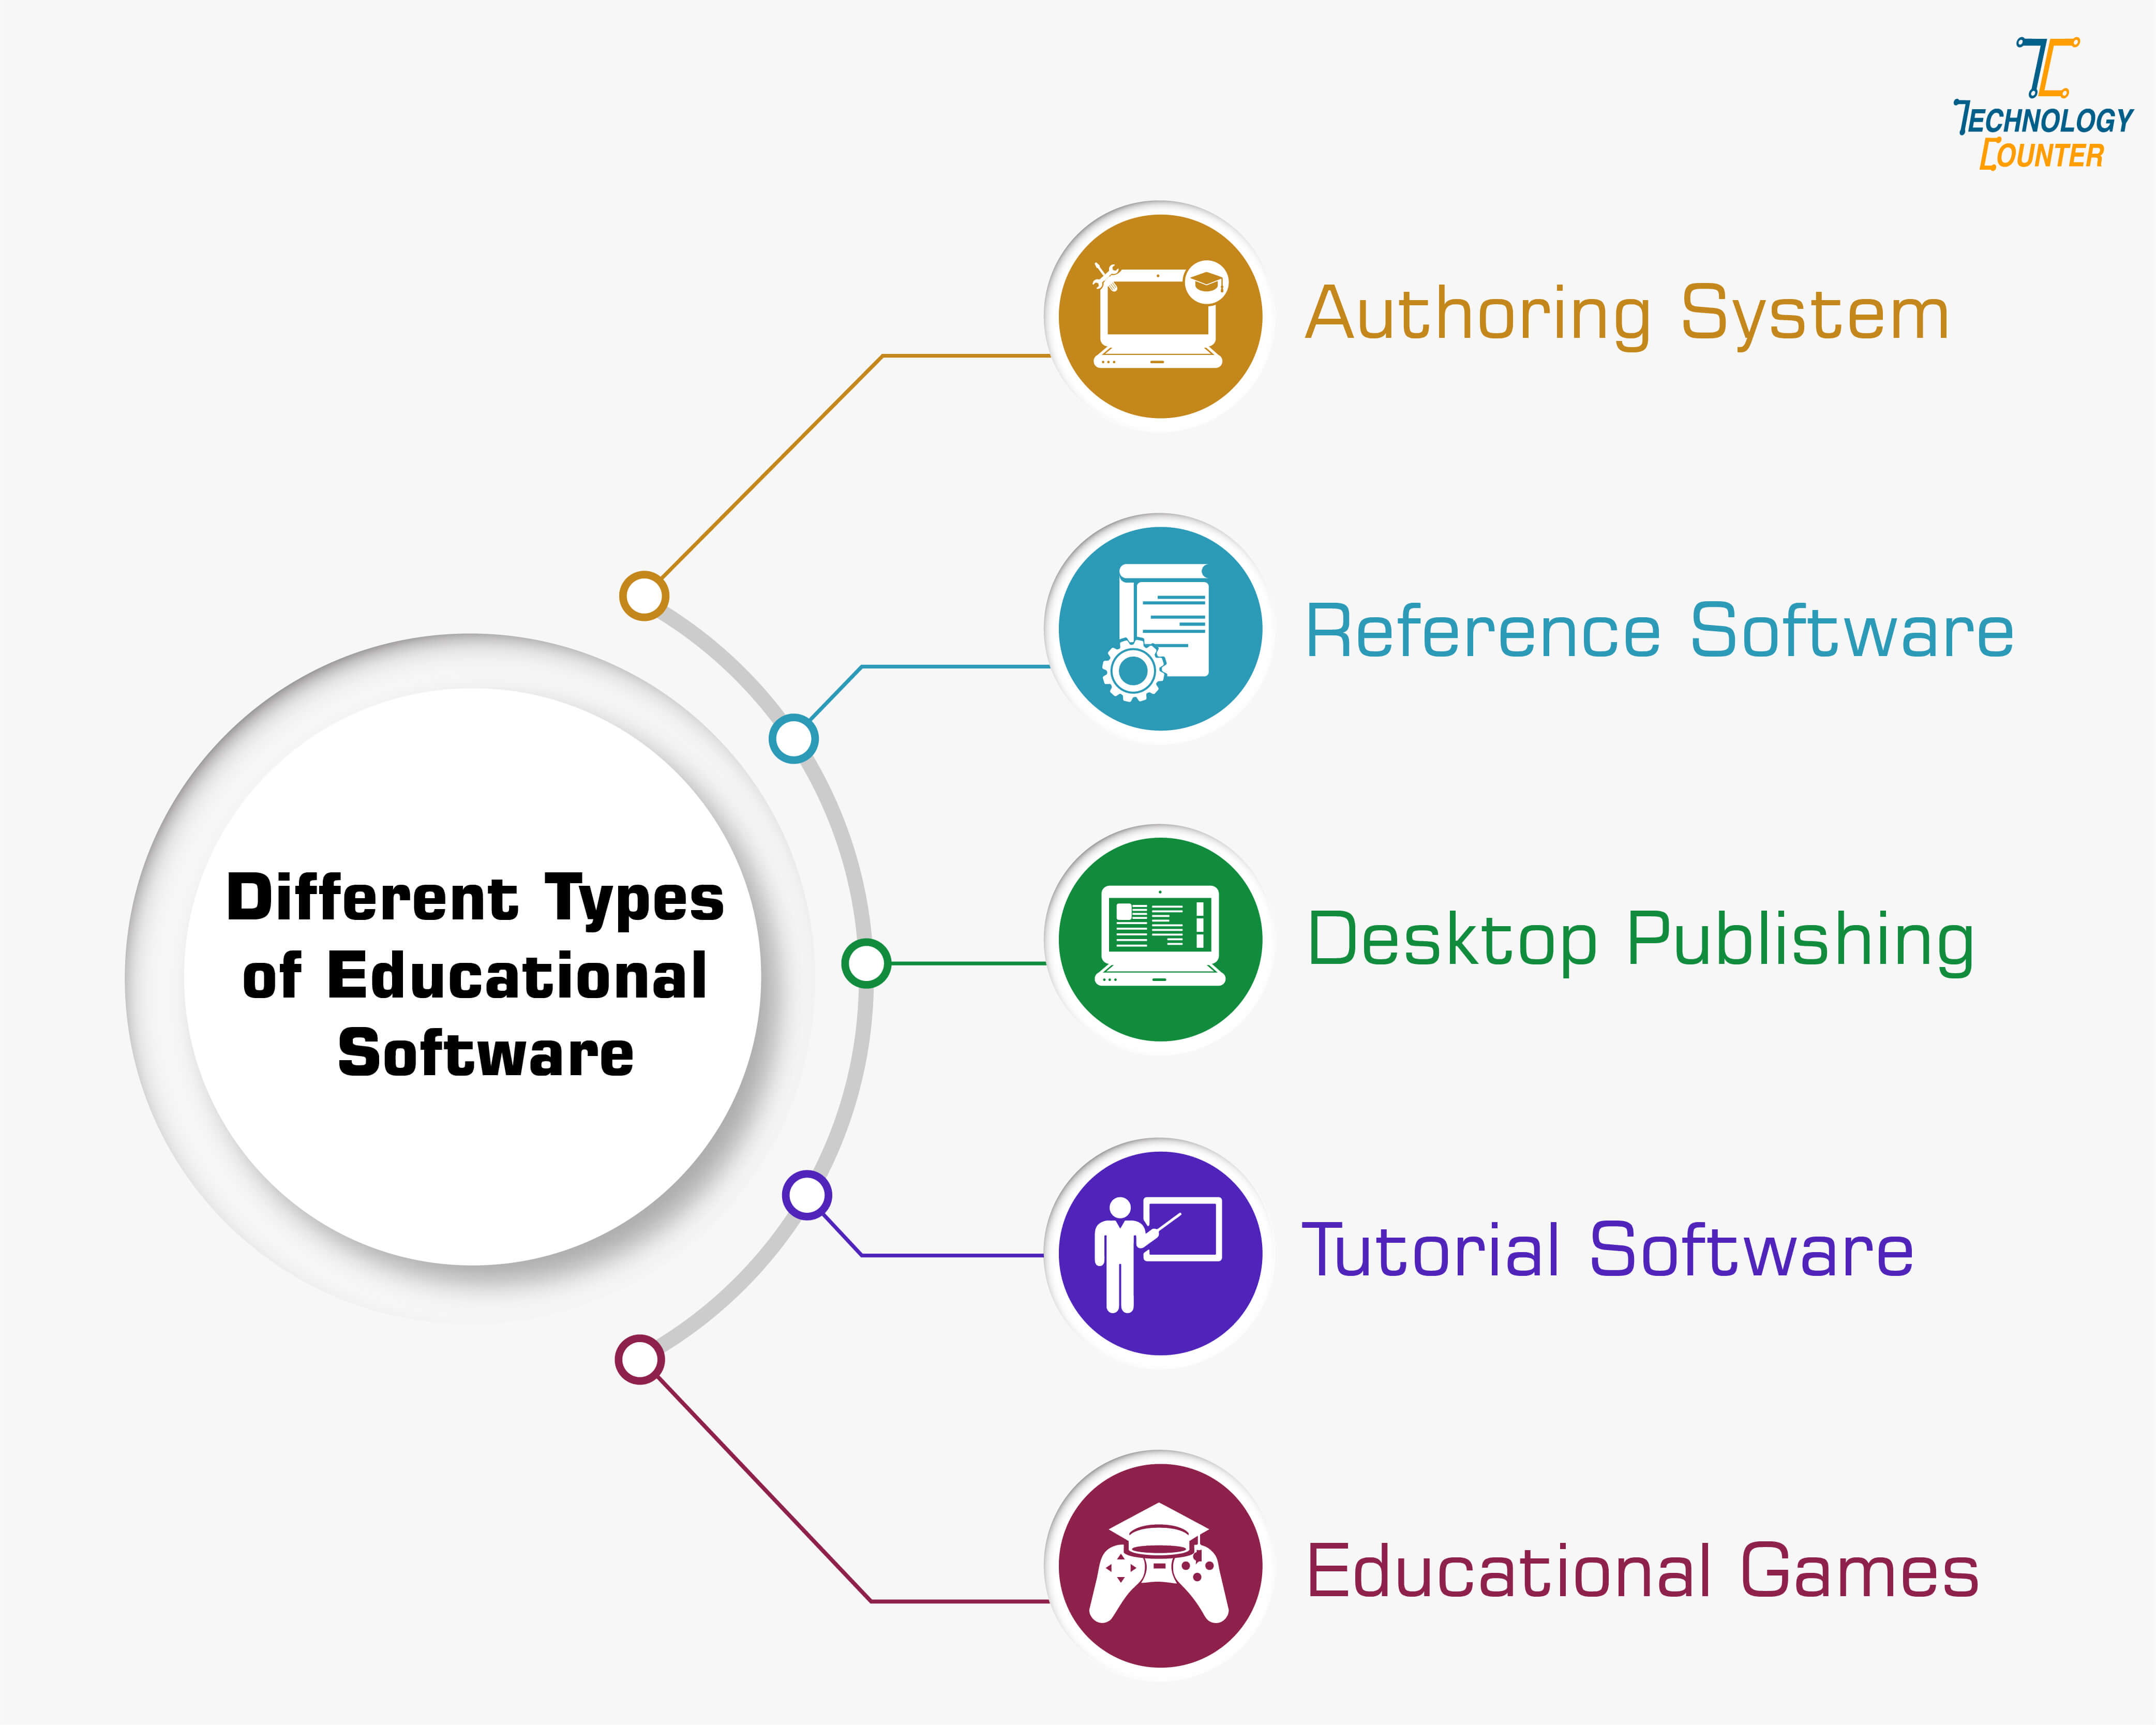 Different types of educational software